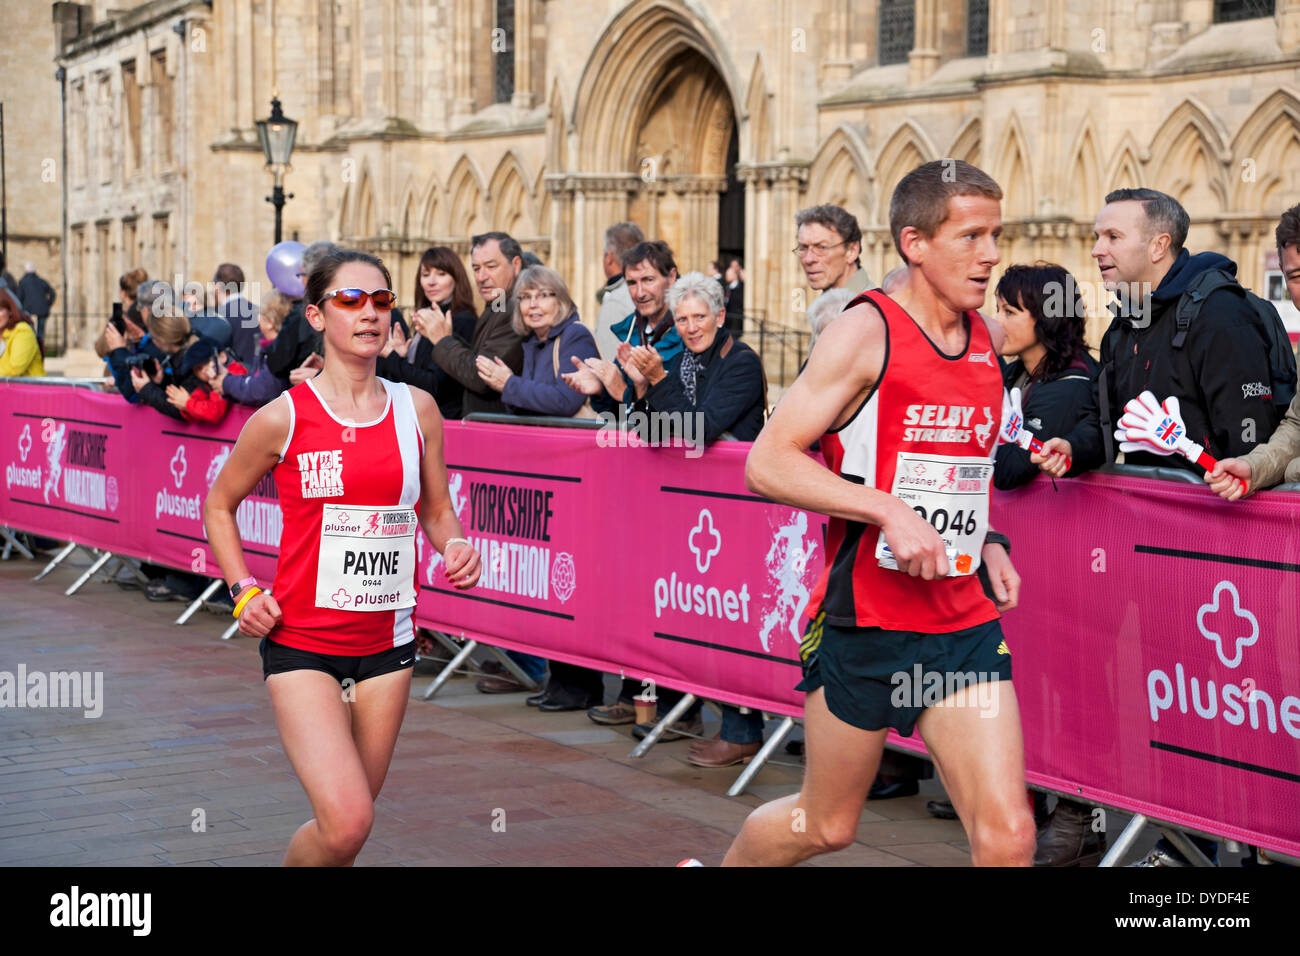 Spectators applaud athletes as they run past York Minster in the first Plusnet Yorkshire Marathon. - Stock Image